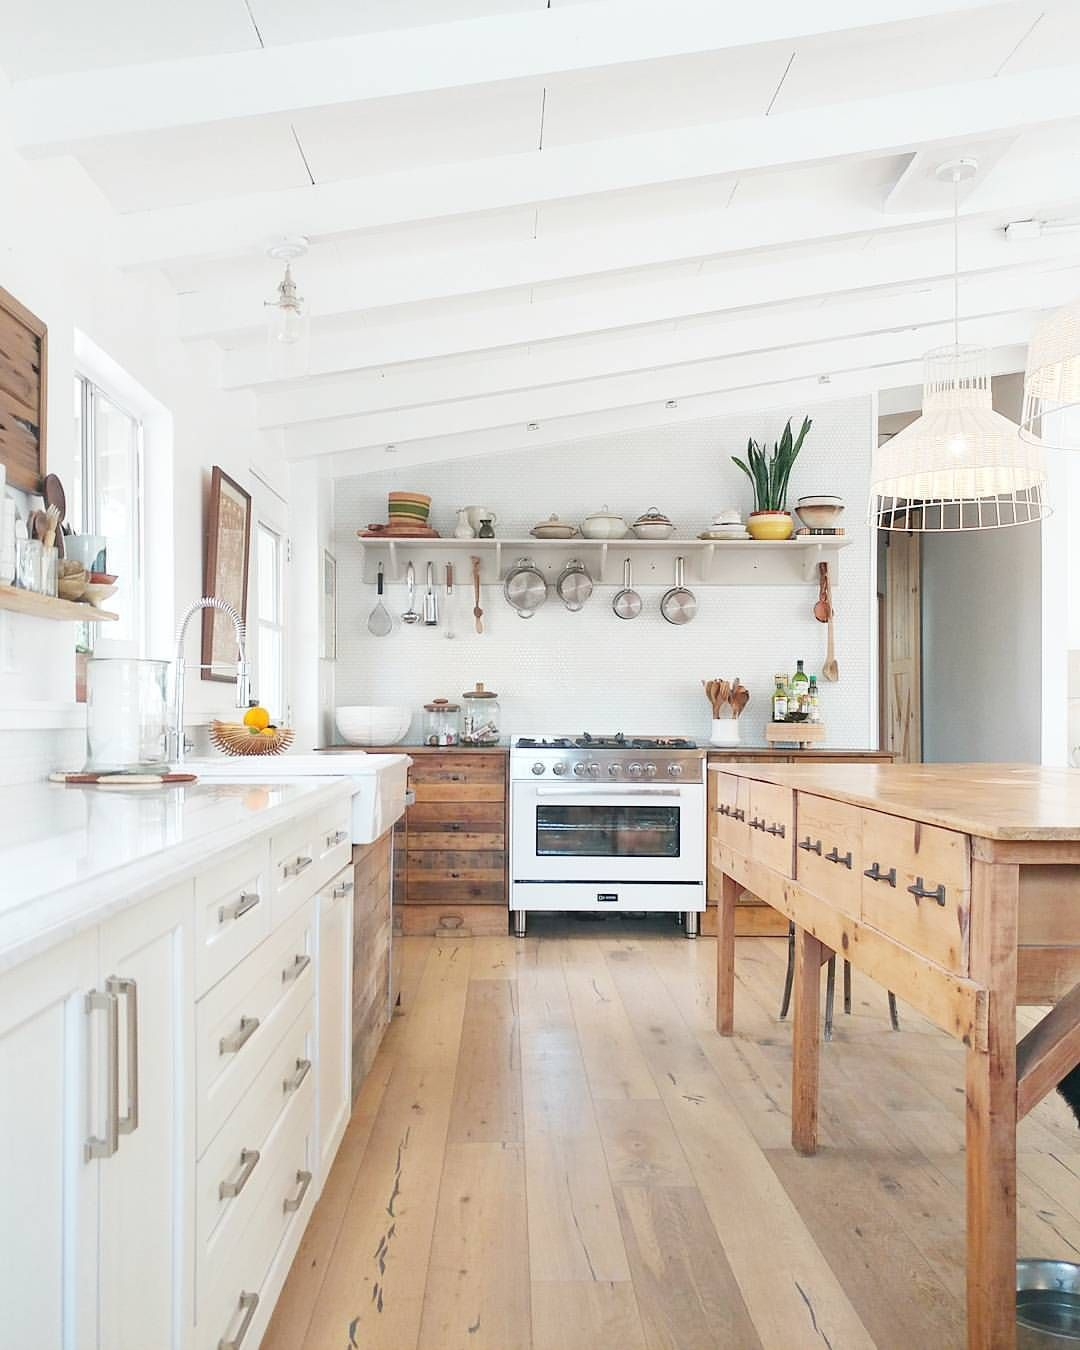 New Look Kitchen And Bath: How To Paint Your Kitchen Cabinets So It Looks Like You